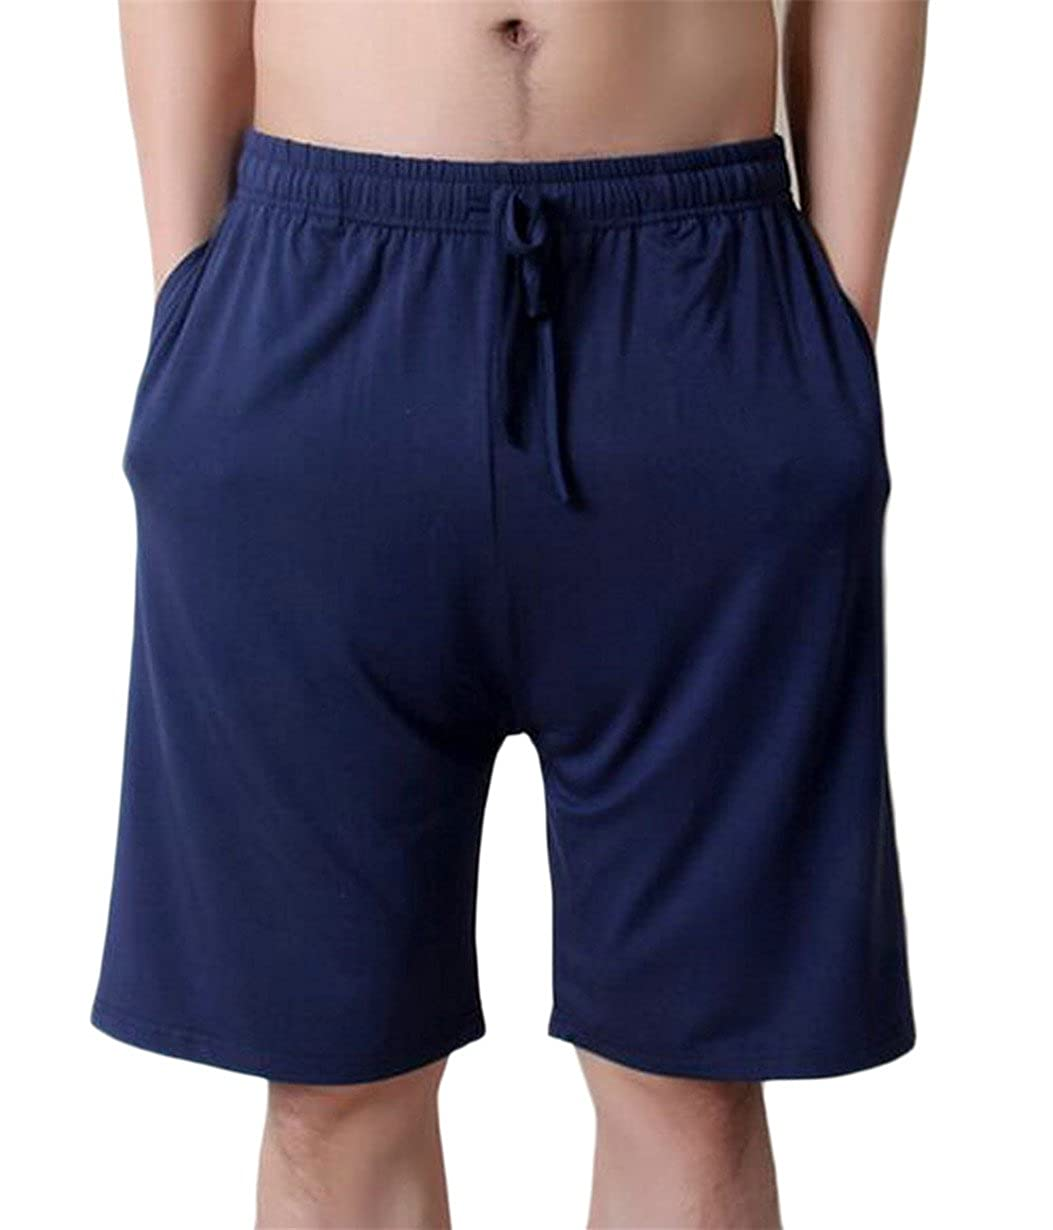 RRINSINS Mens Leisure Cozy Pure Color Elastic Waist Home Wear Short Pants